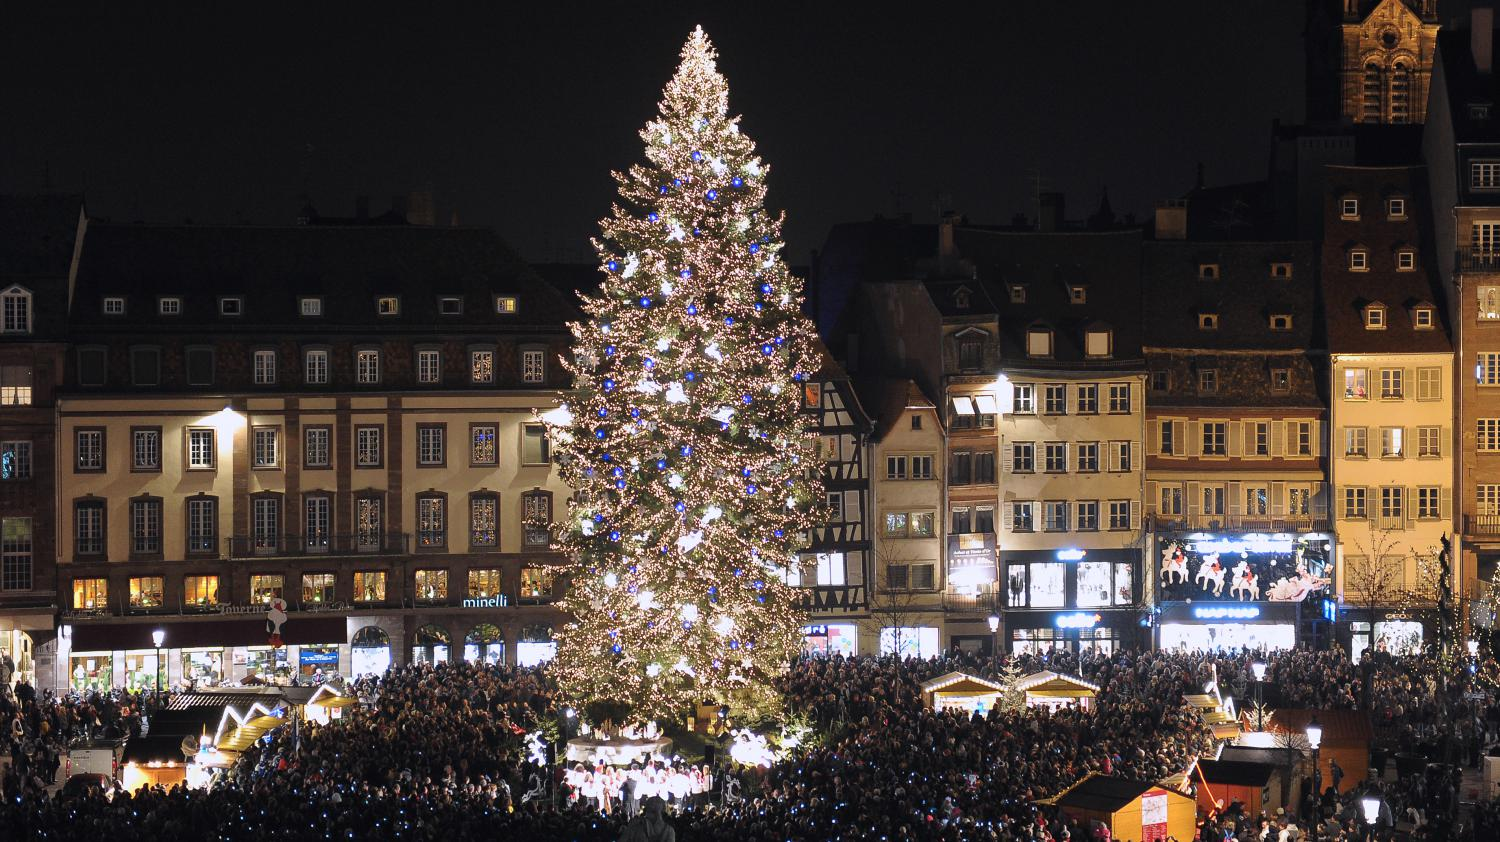 Video le march de no l de strasbourg a ouvert ses portes for Les plus beaux sapins de noel decores